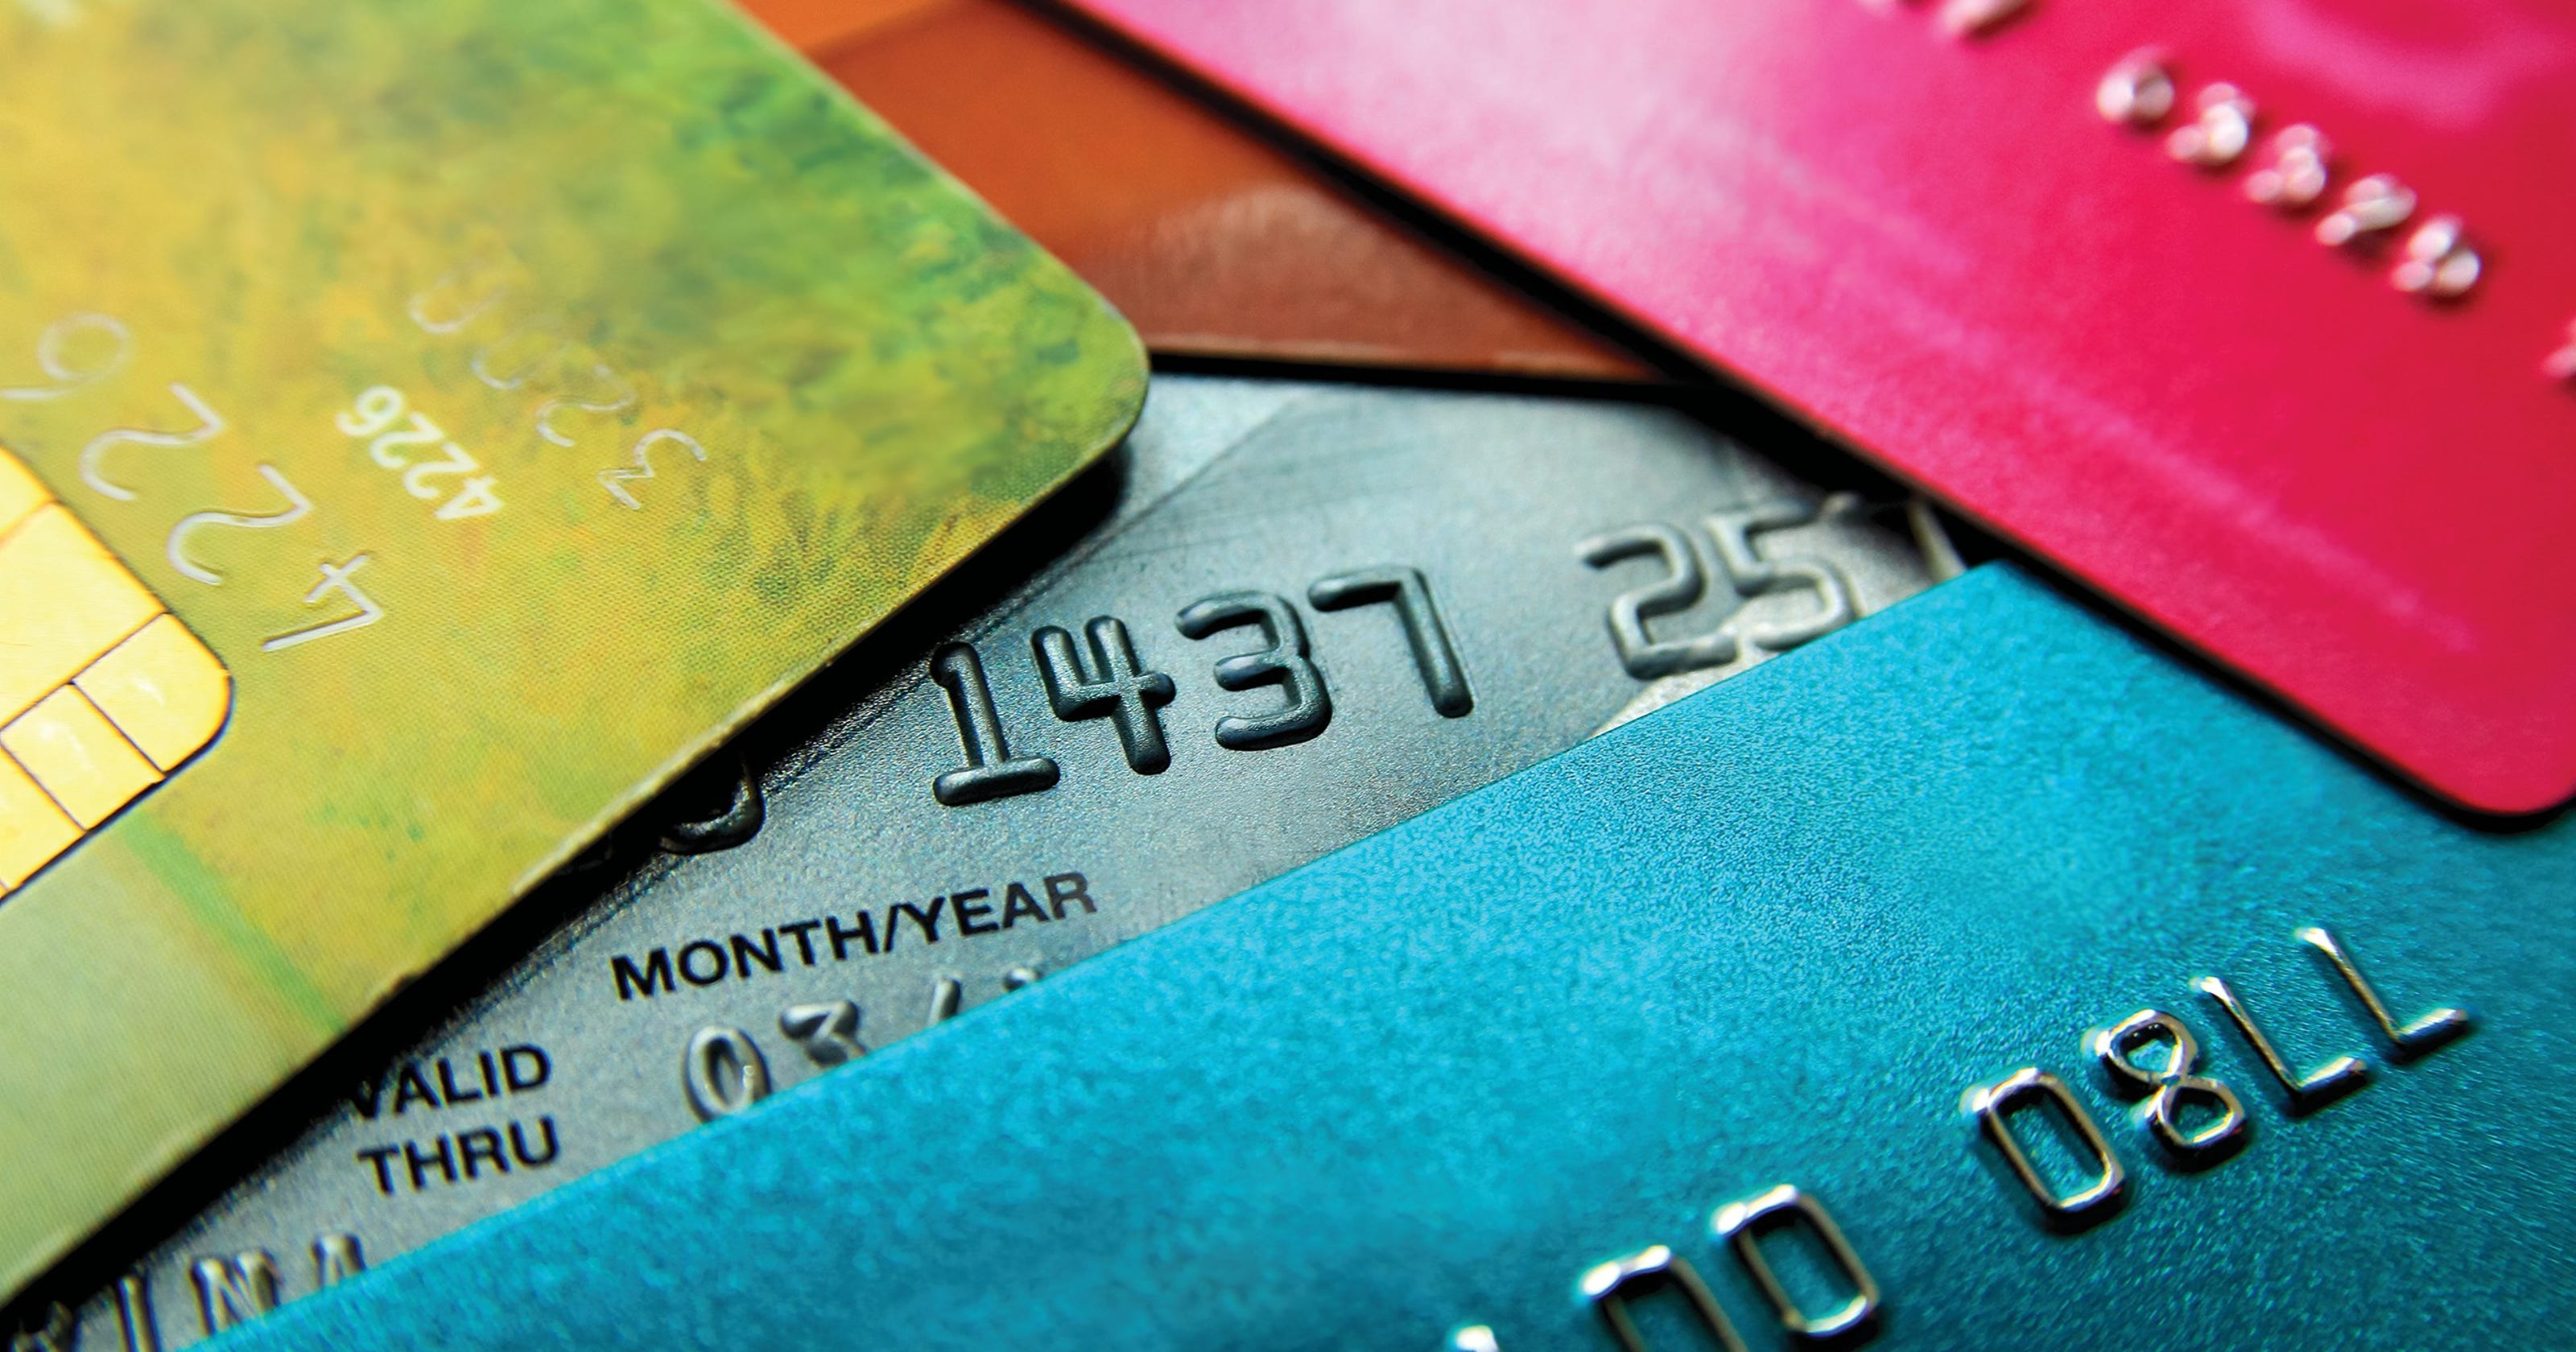 How To Check Your Citi Credit Card Application Status Wallethub >> The Best Credit Card Offers For 2018